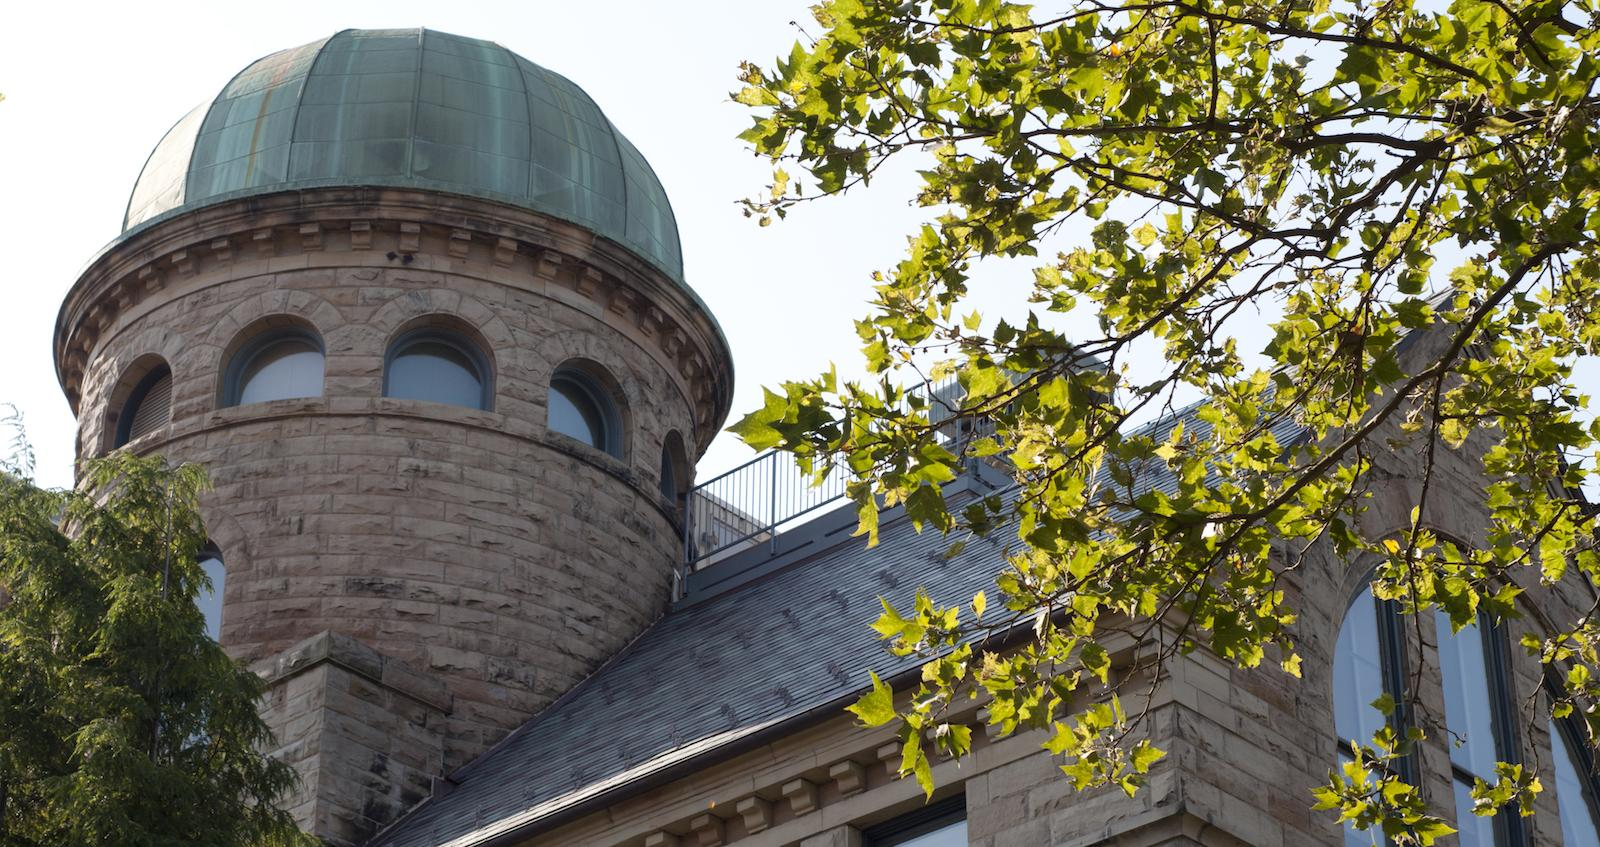 exterior image of dome of the Oberlin observatory